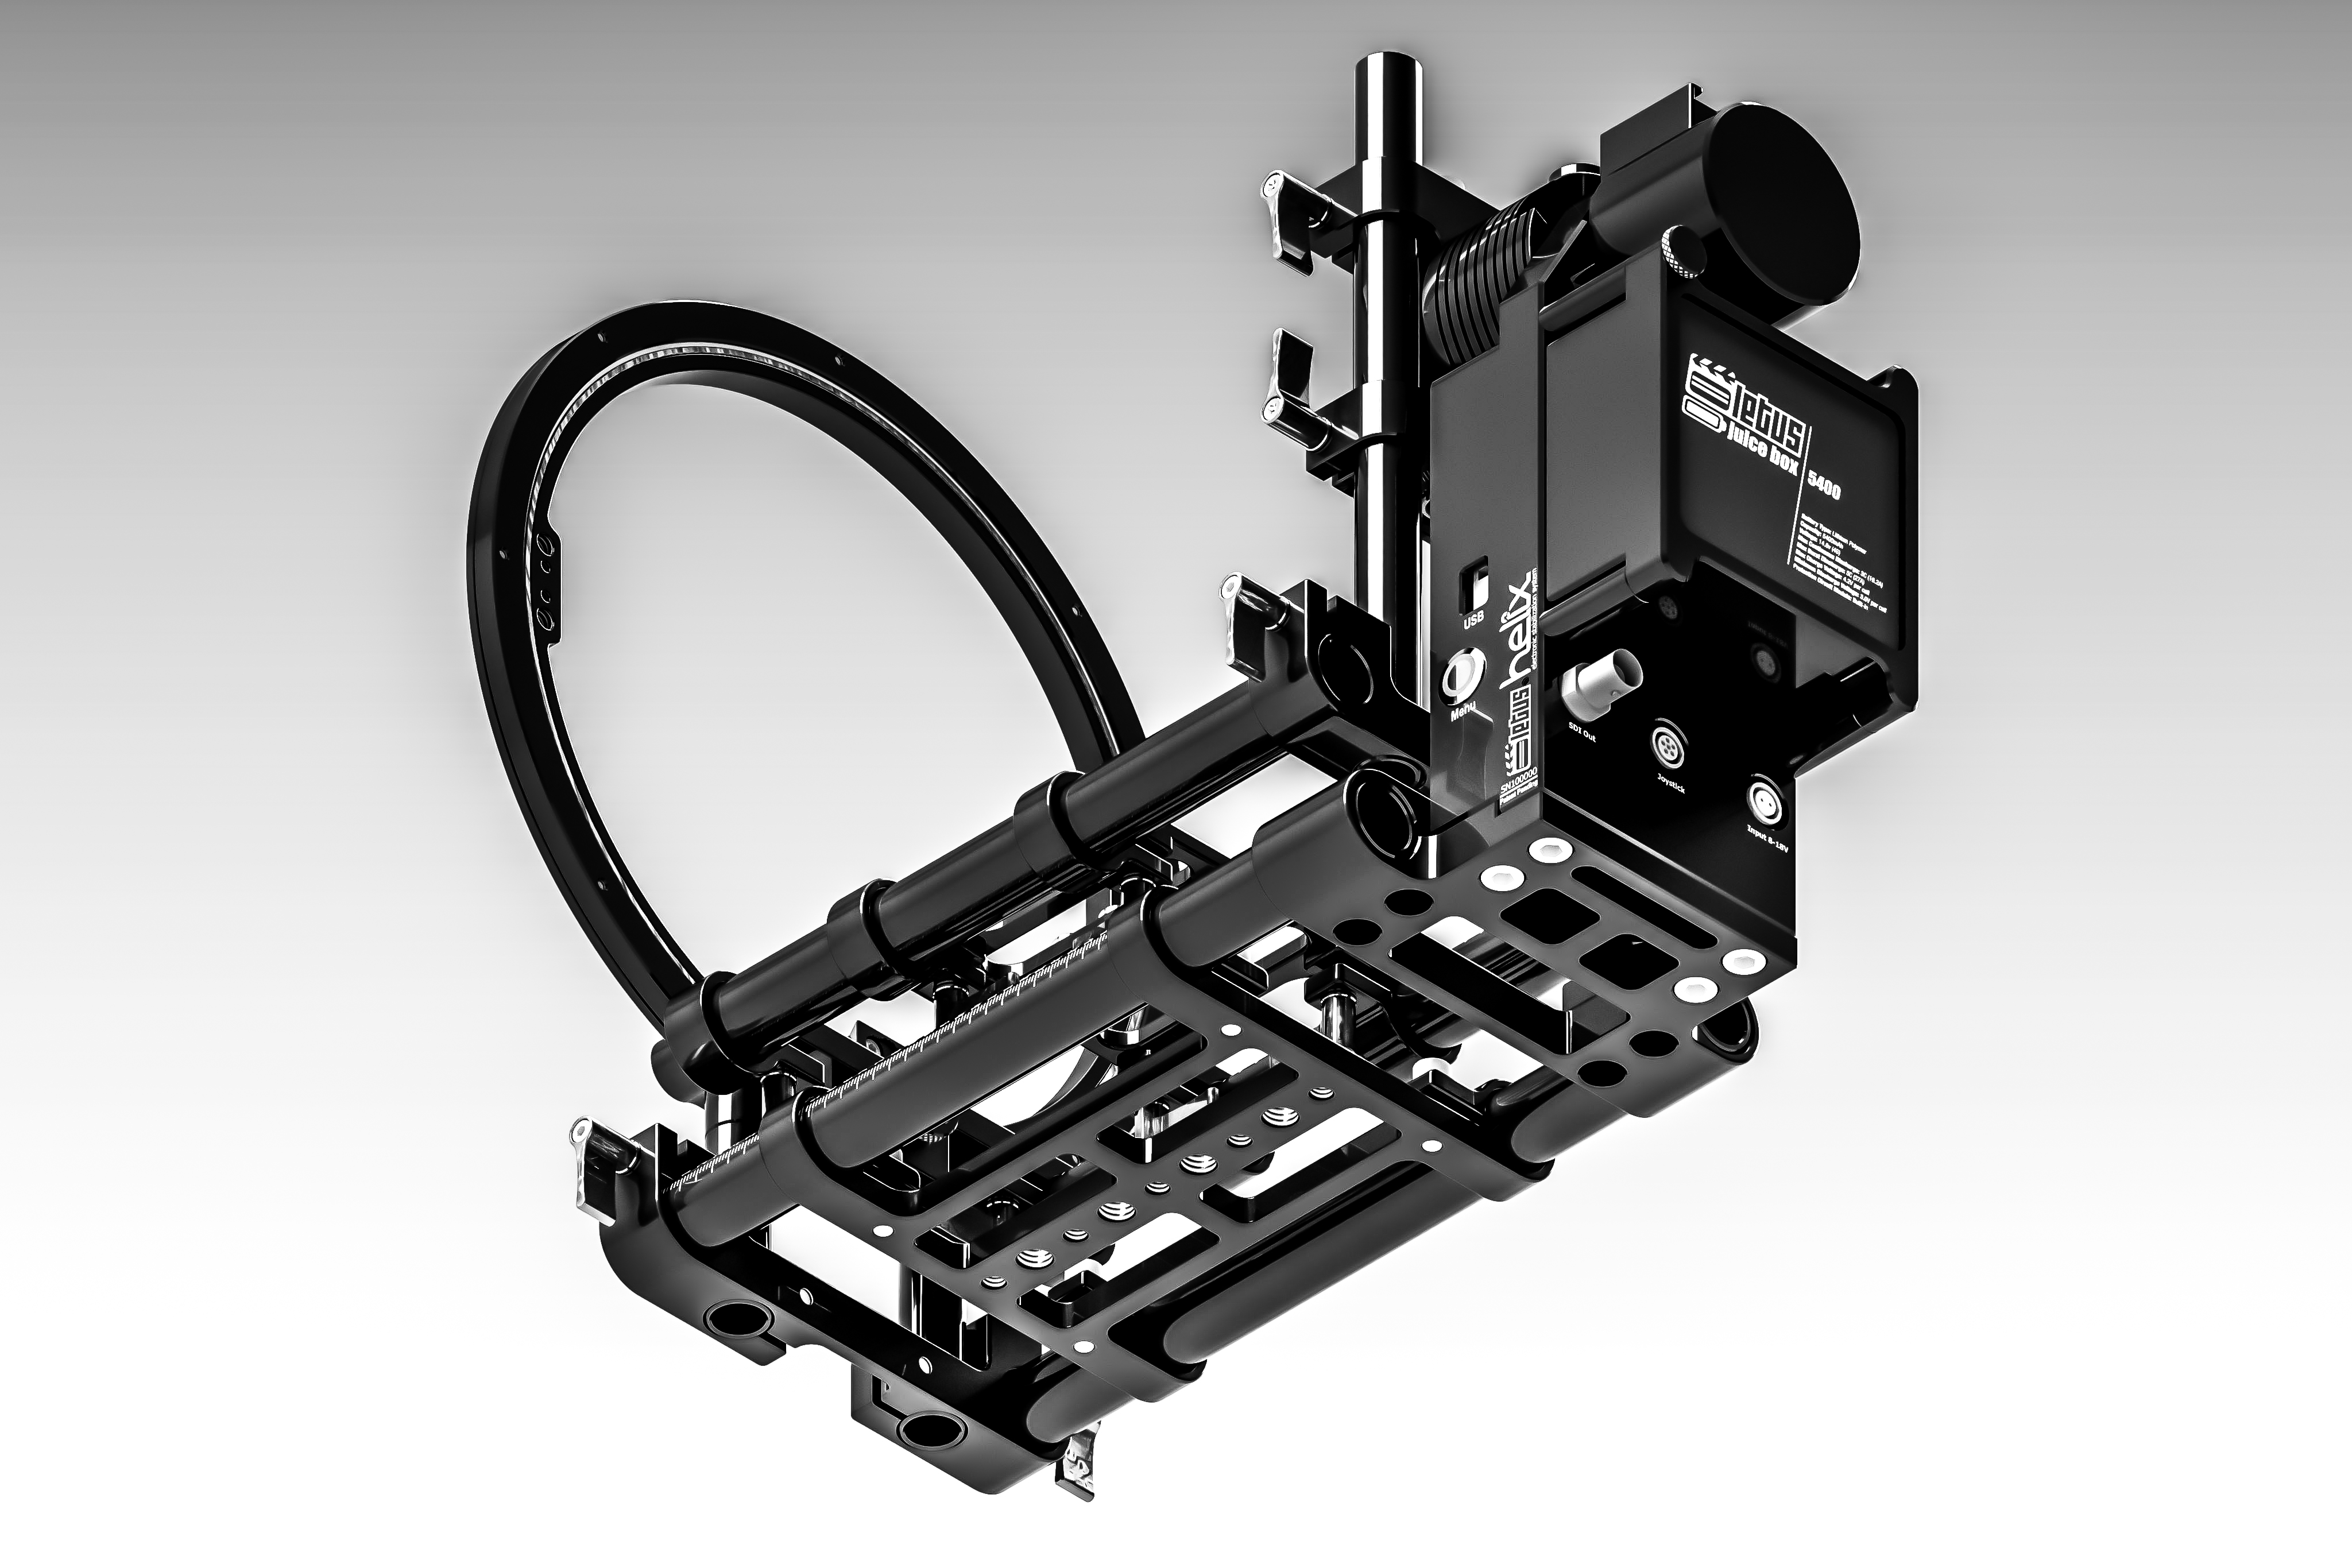 Standard_Helix_With_Front_Support2 (1)